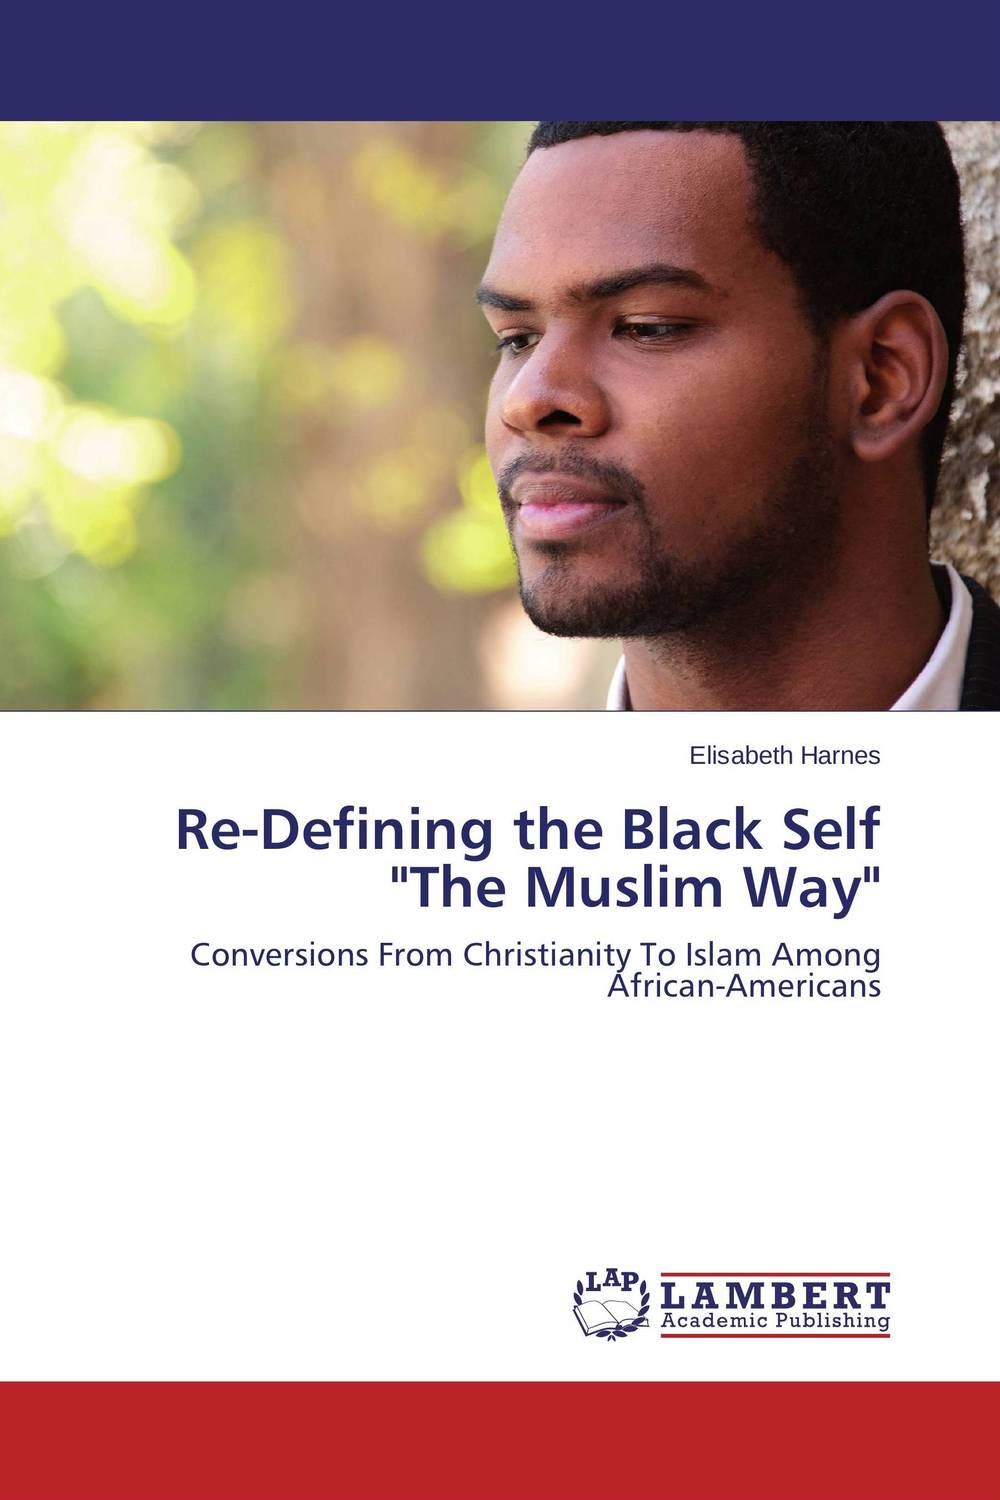 an introduction to the history of islam among african americans It is not surprising that african history the role of the merchant was the introduction of islam randall pouwels claims in the history of islam.